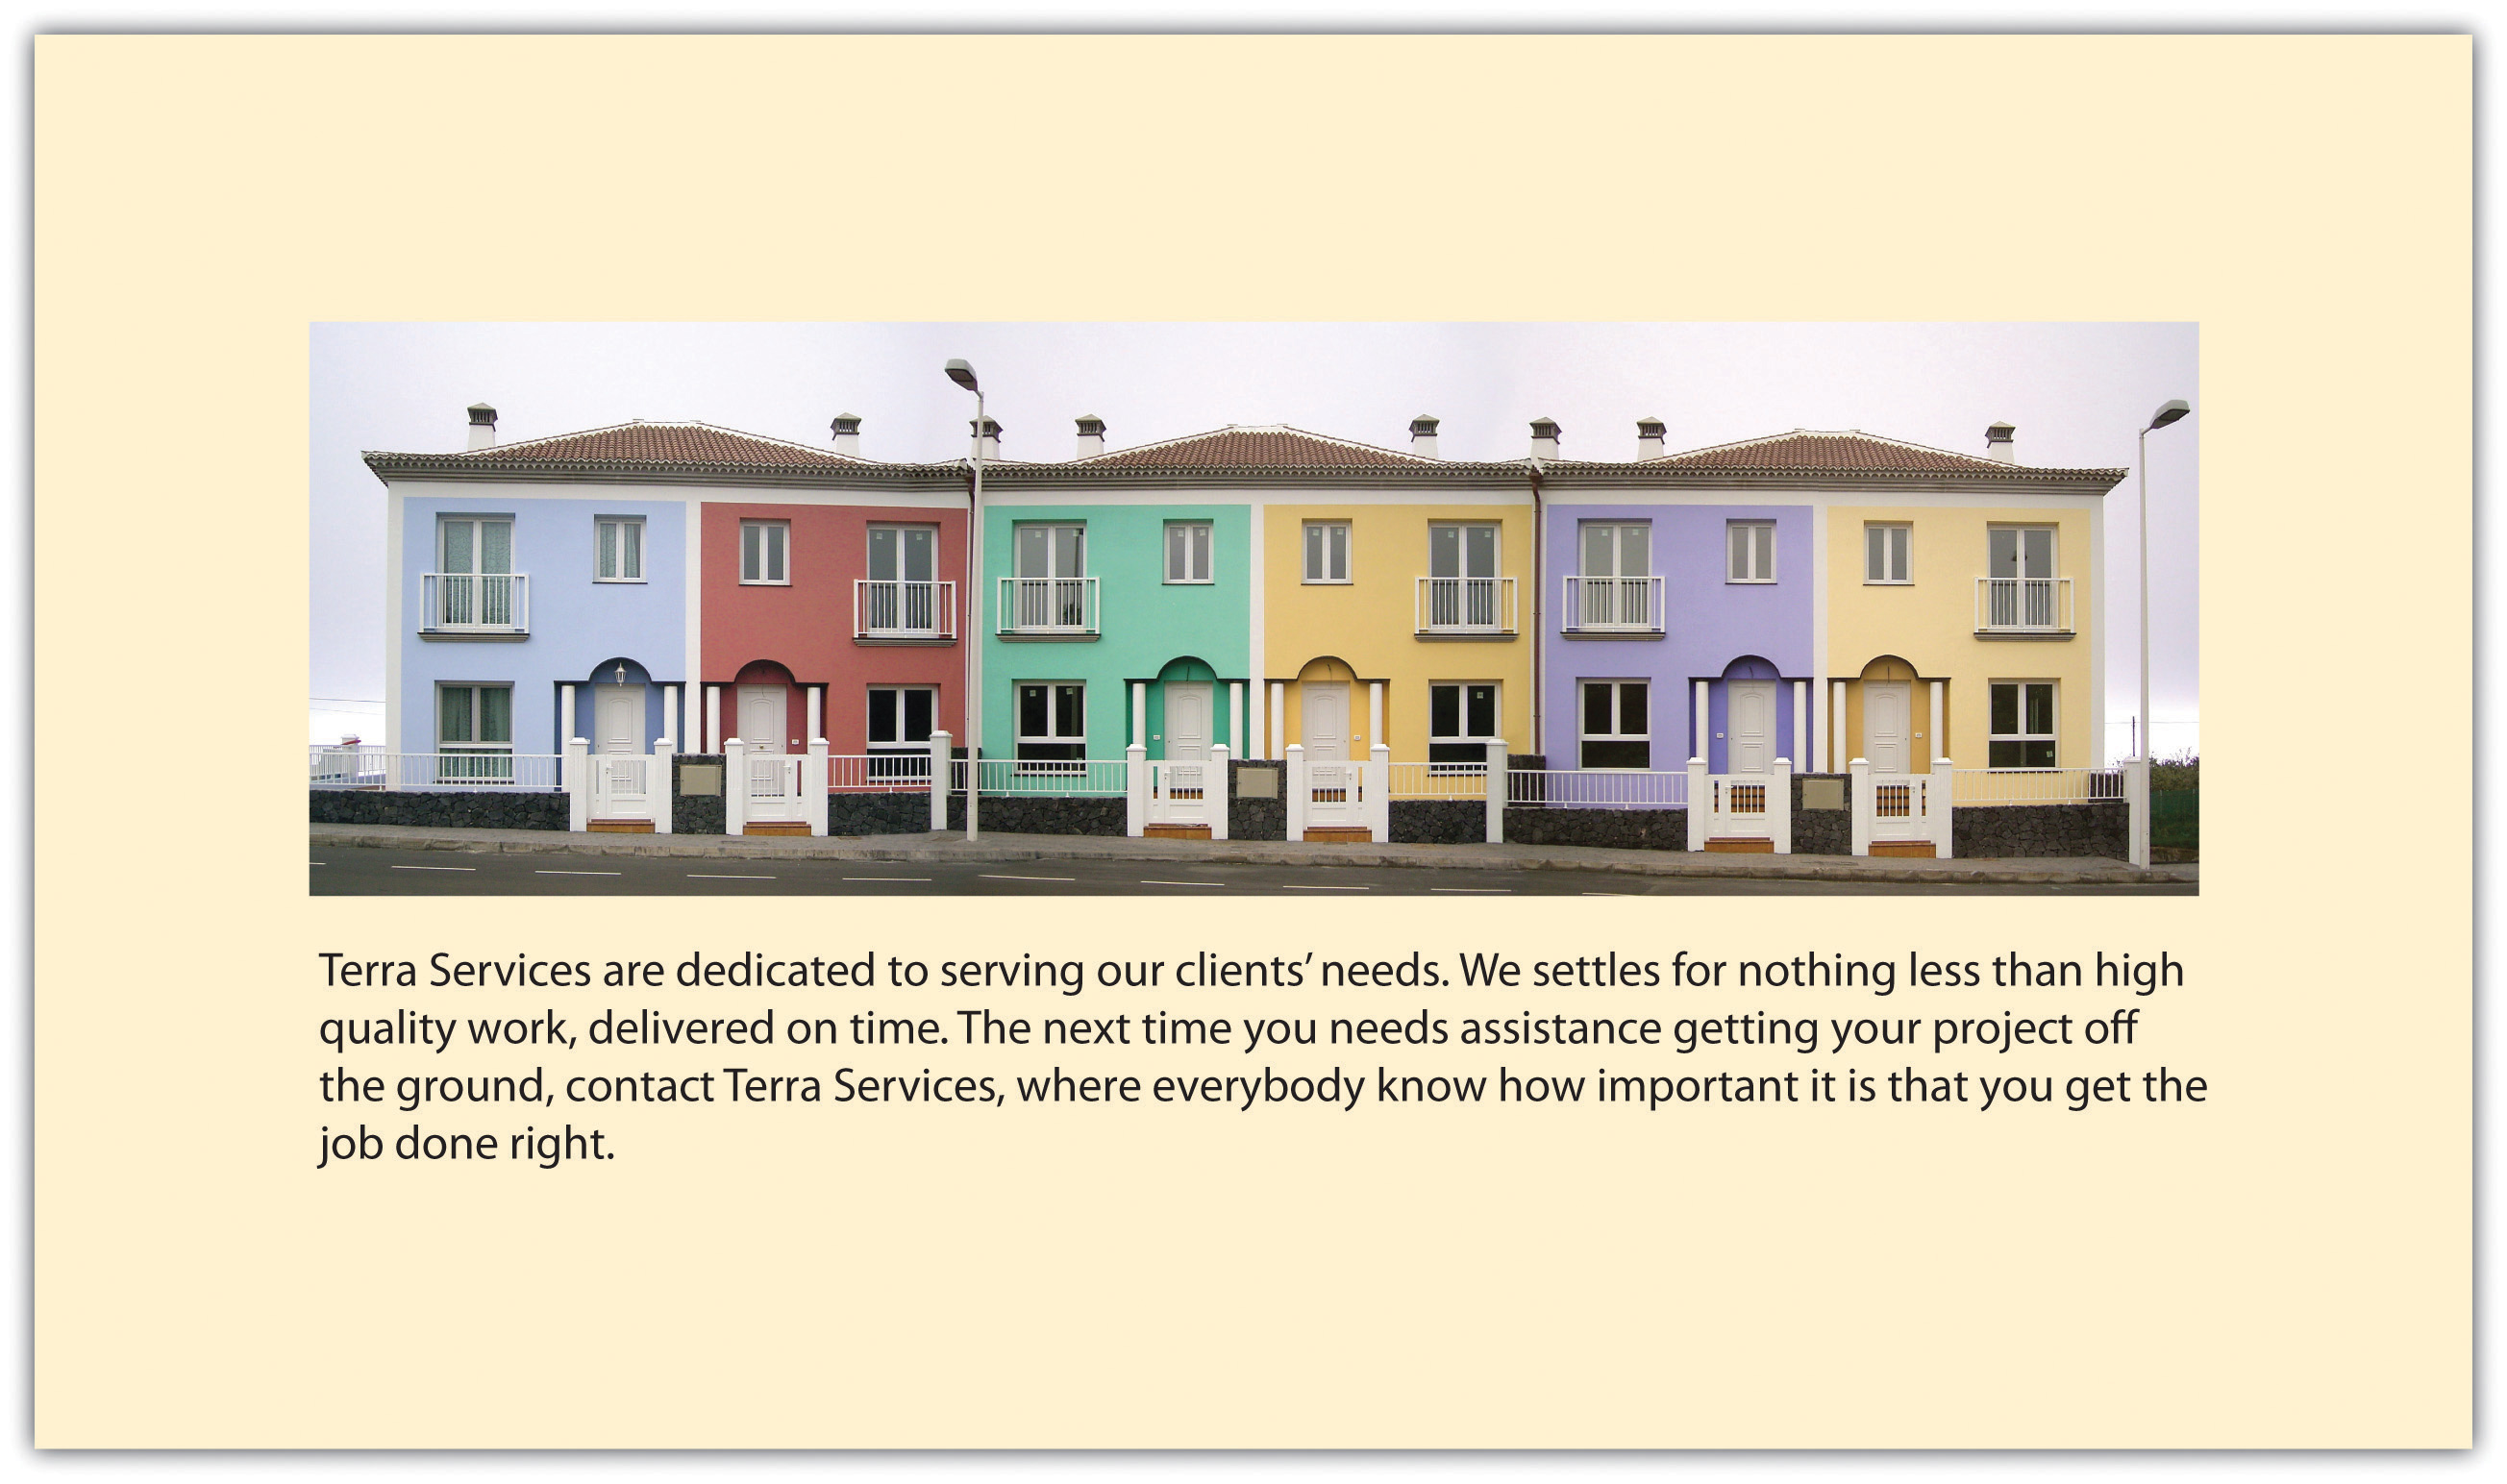 Advertisement: Terra Services are dedicated to serving our clients' needs. We settles for nothing less than high quality work, delivered on time. The next time you needs assistance getting your project off the ground, contact Terra Services, where everybody know how important it is that you get the job done right.